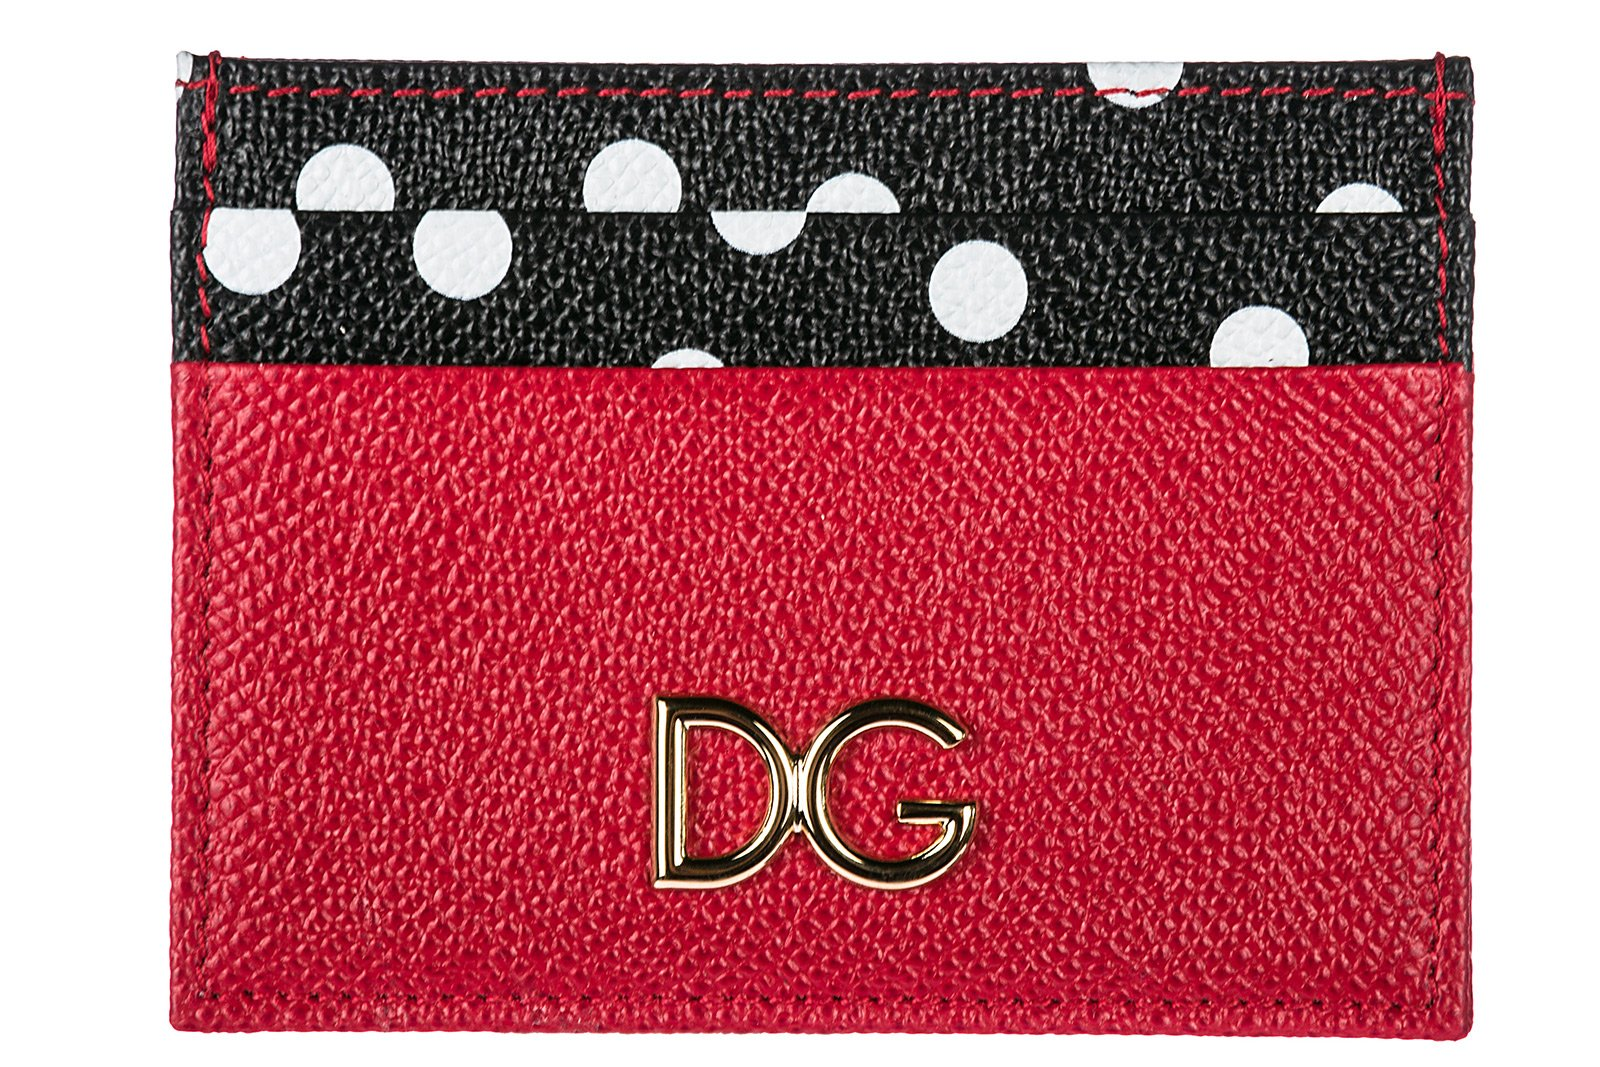 Dolce&Gabbana women's genuine leather credit card case holder wallet red by Dolce & Gabbana